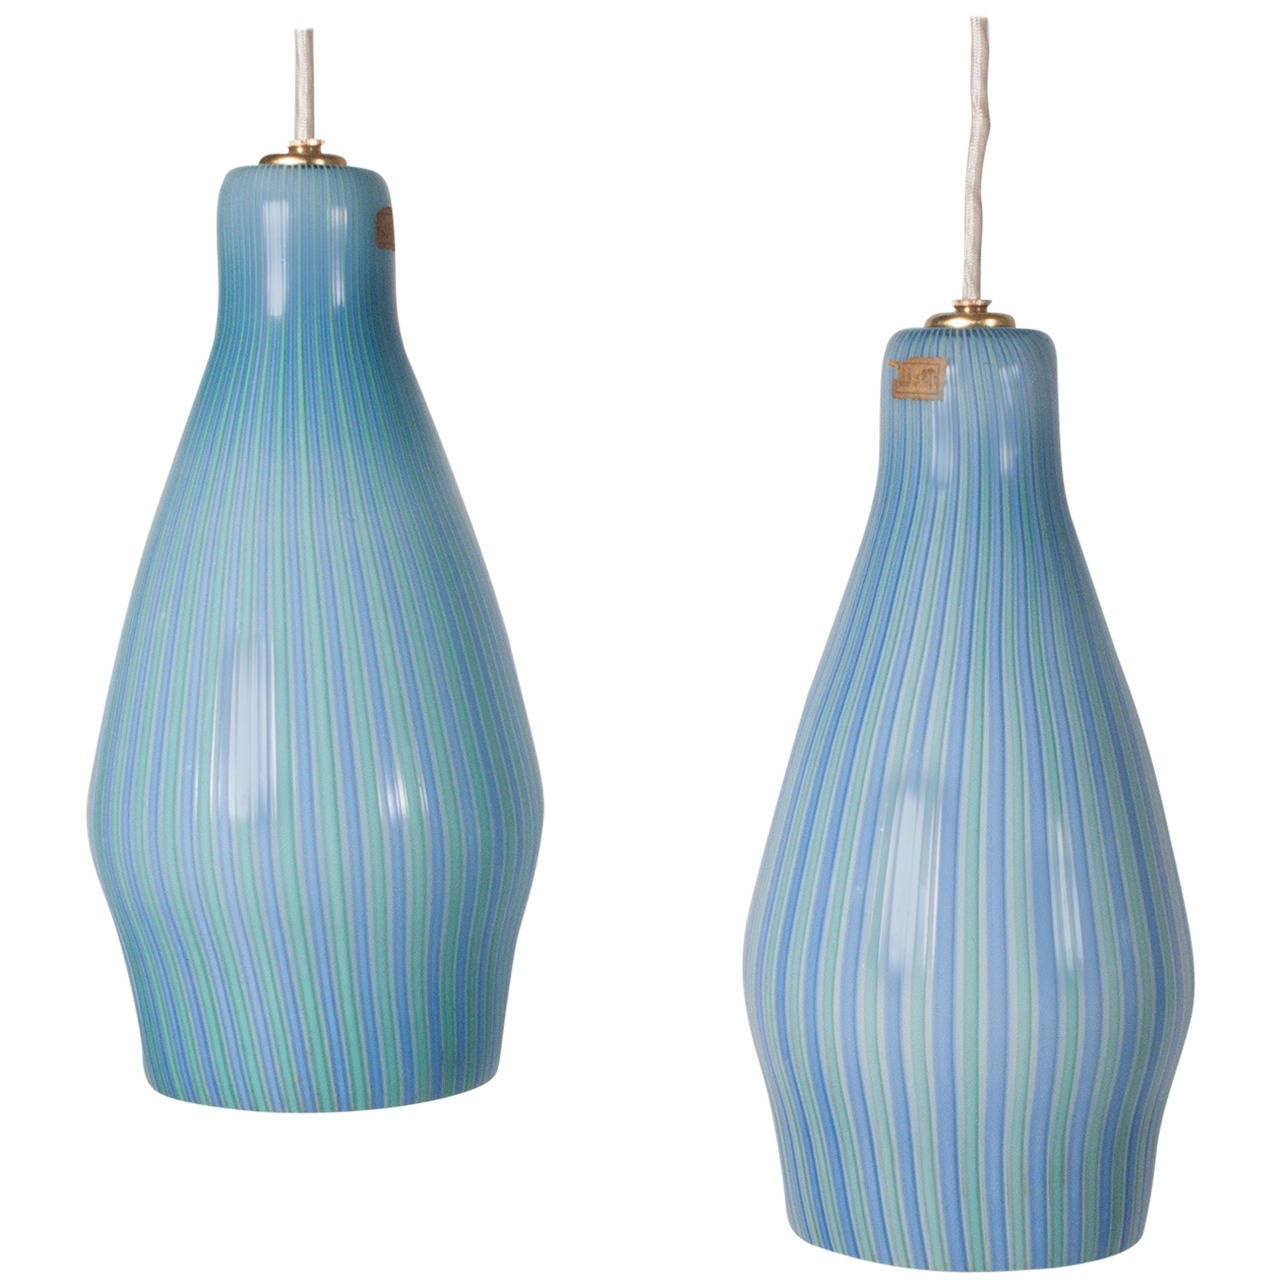 Pair of Pendant Lamps by Venini For Sale